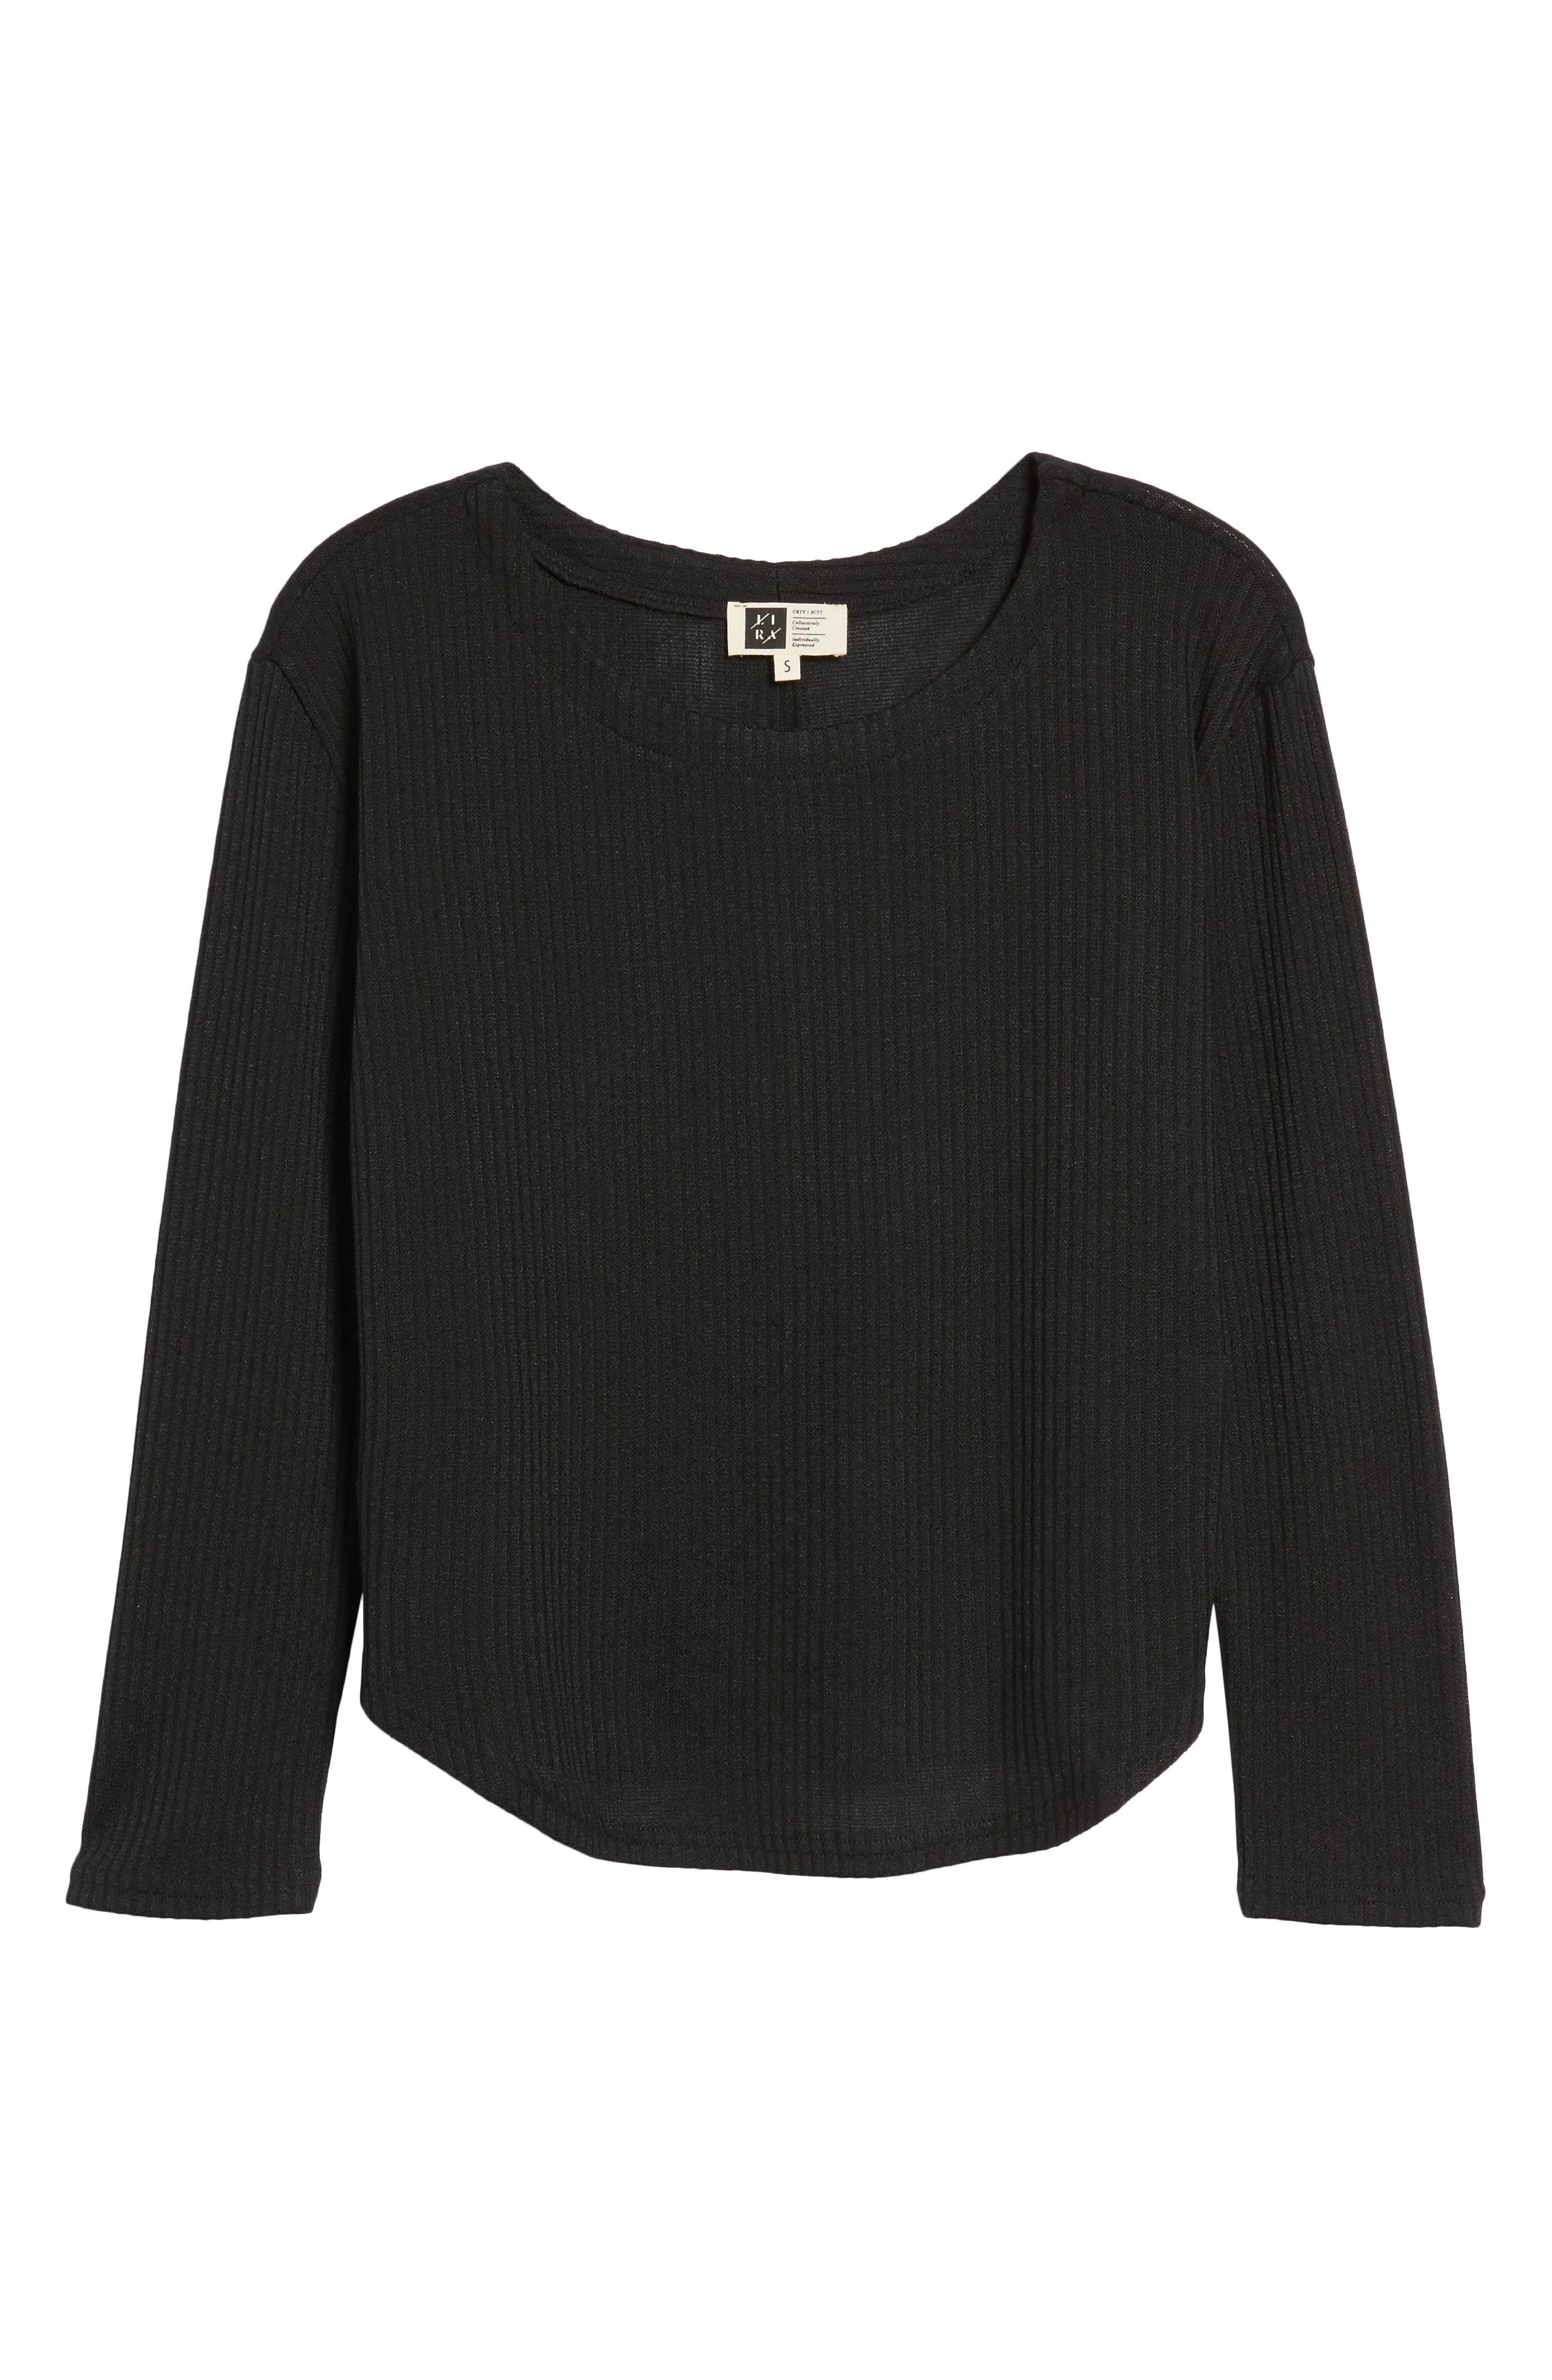 Sparrow Thermal Top,                             Alternate thumbnail 6, color,                             Black